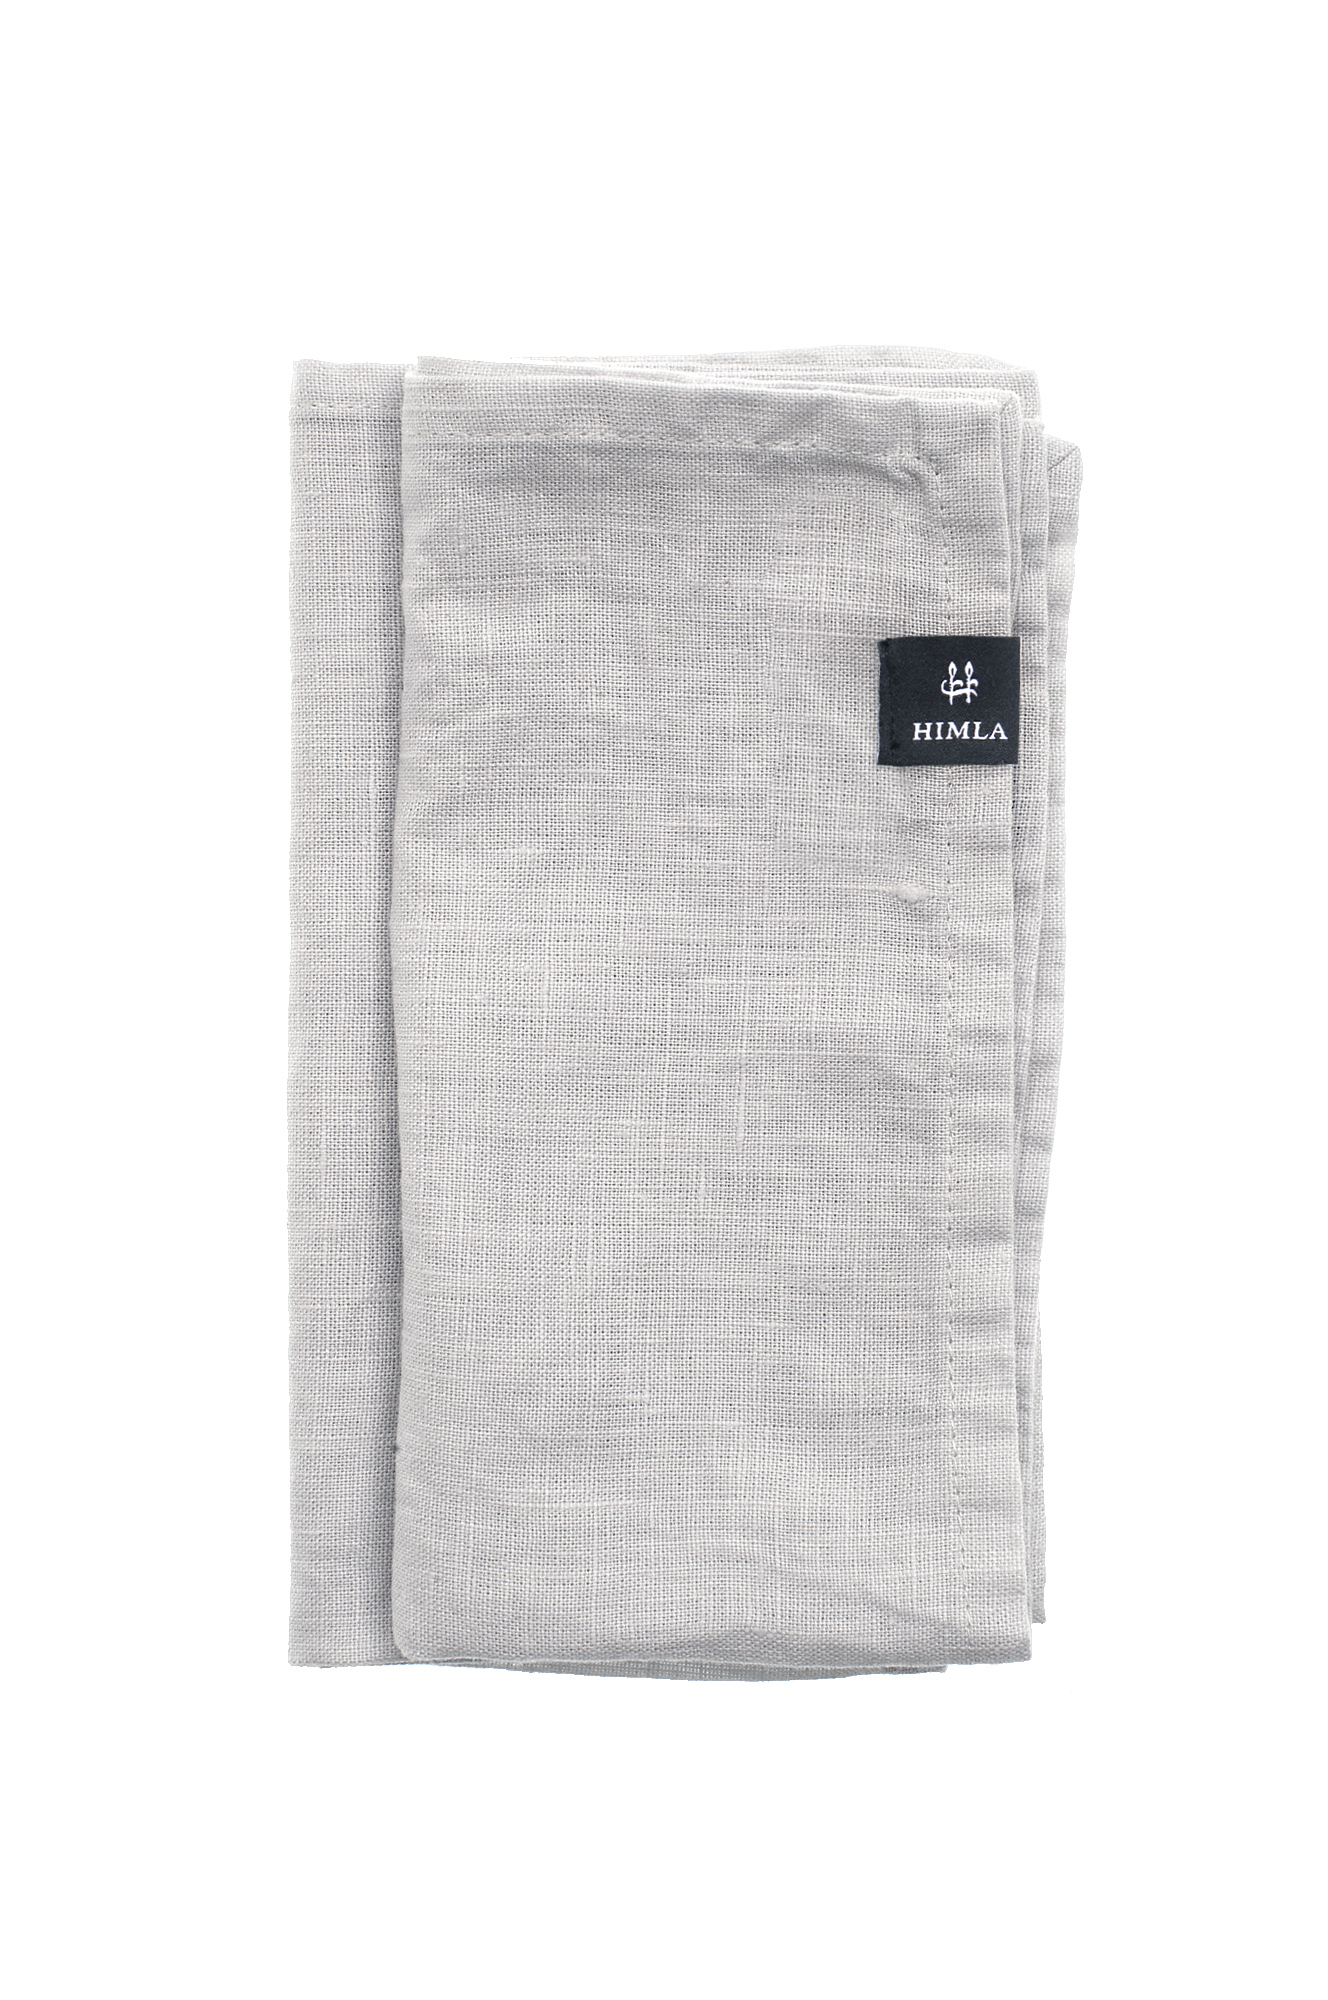 Chalk Sunshine Linen Napkin 45x45cm (Set of 4)